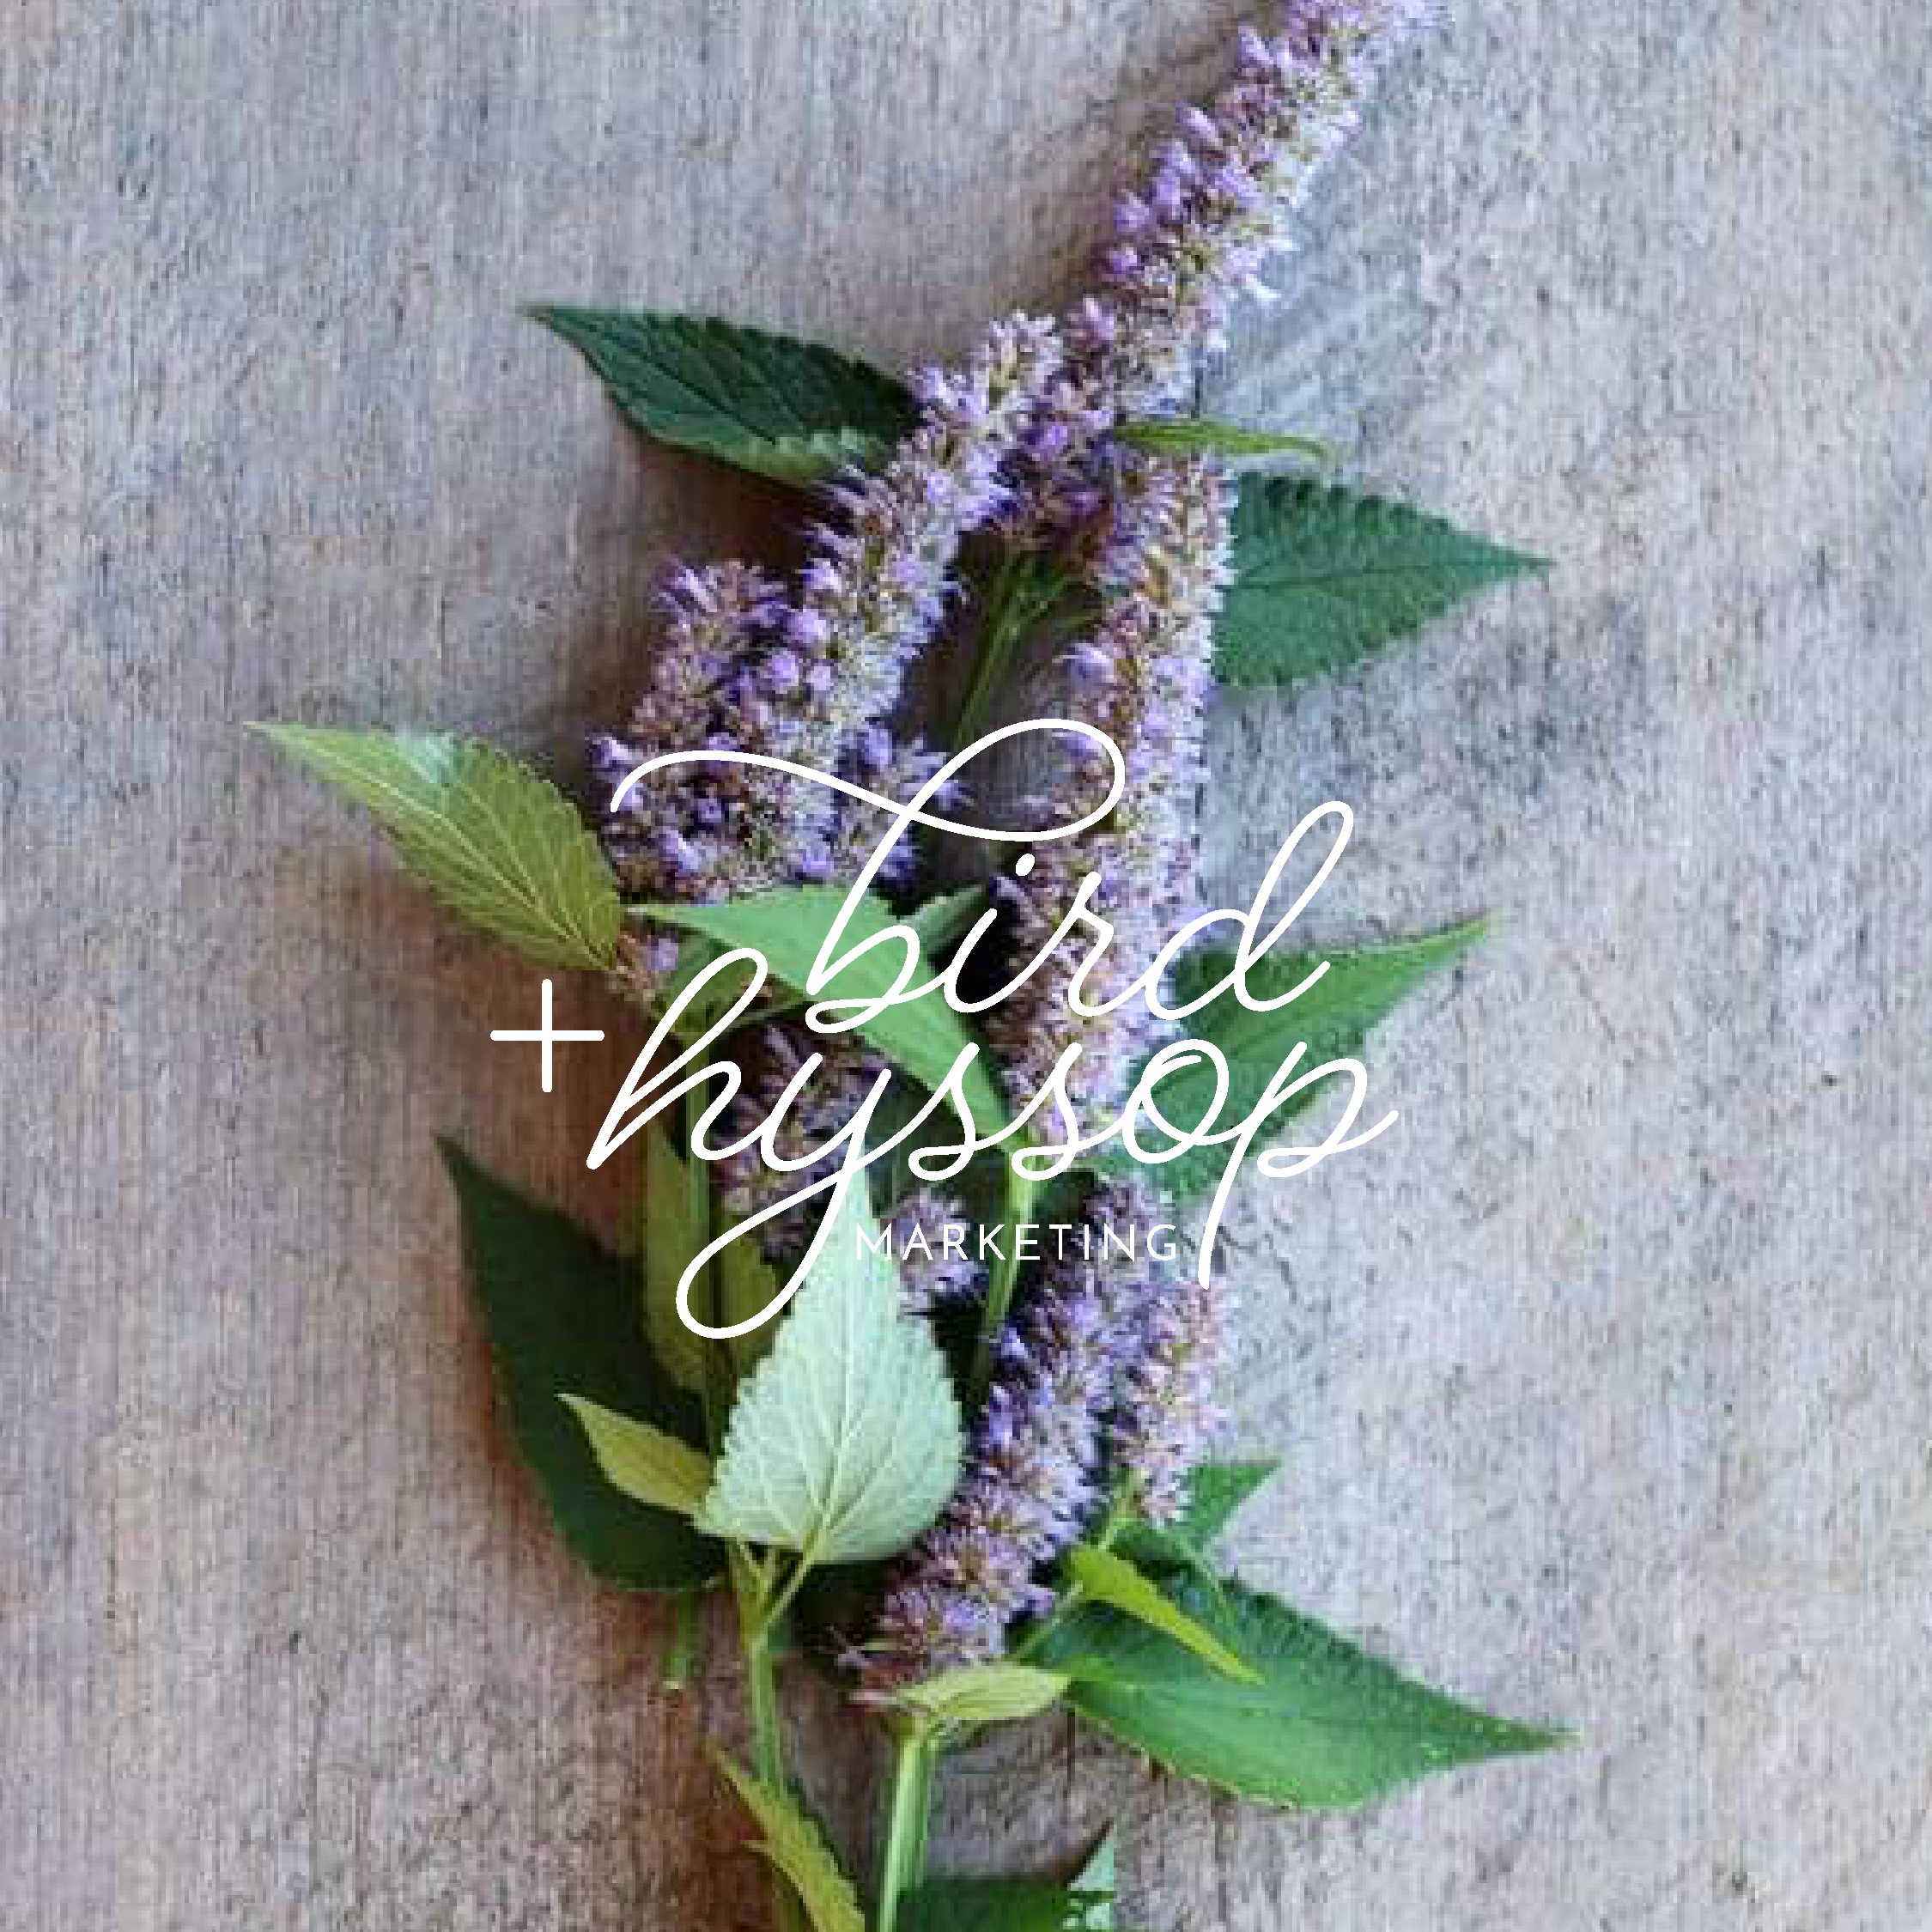 bird + hyssop Houston Marketing and StoryBrand Coach brand and logo design by Kindly by Kelsea